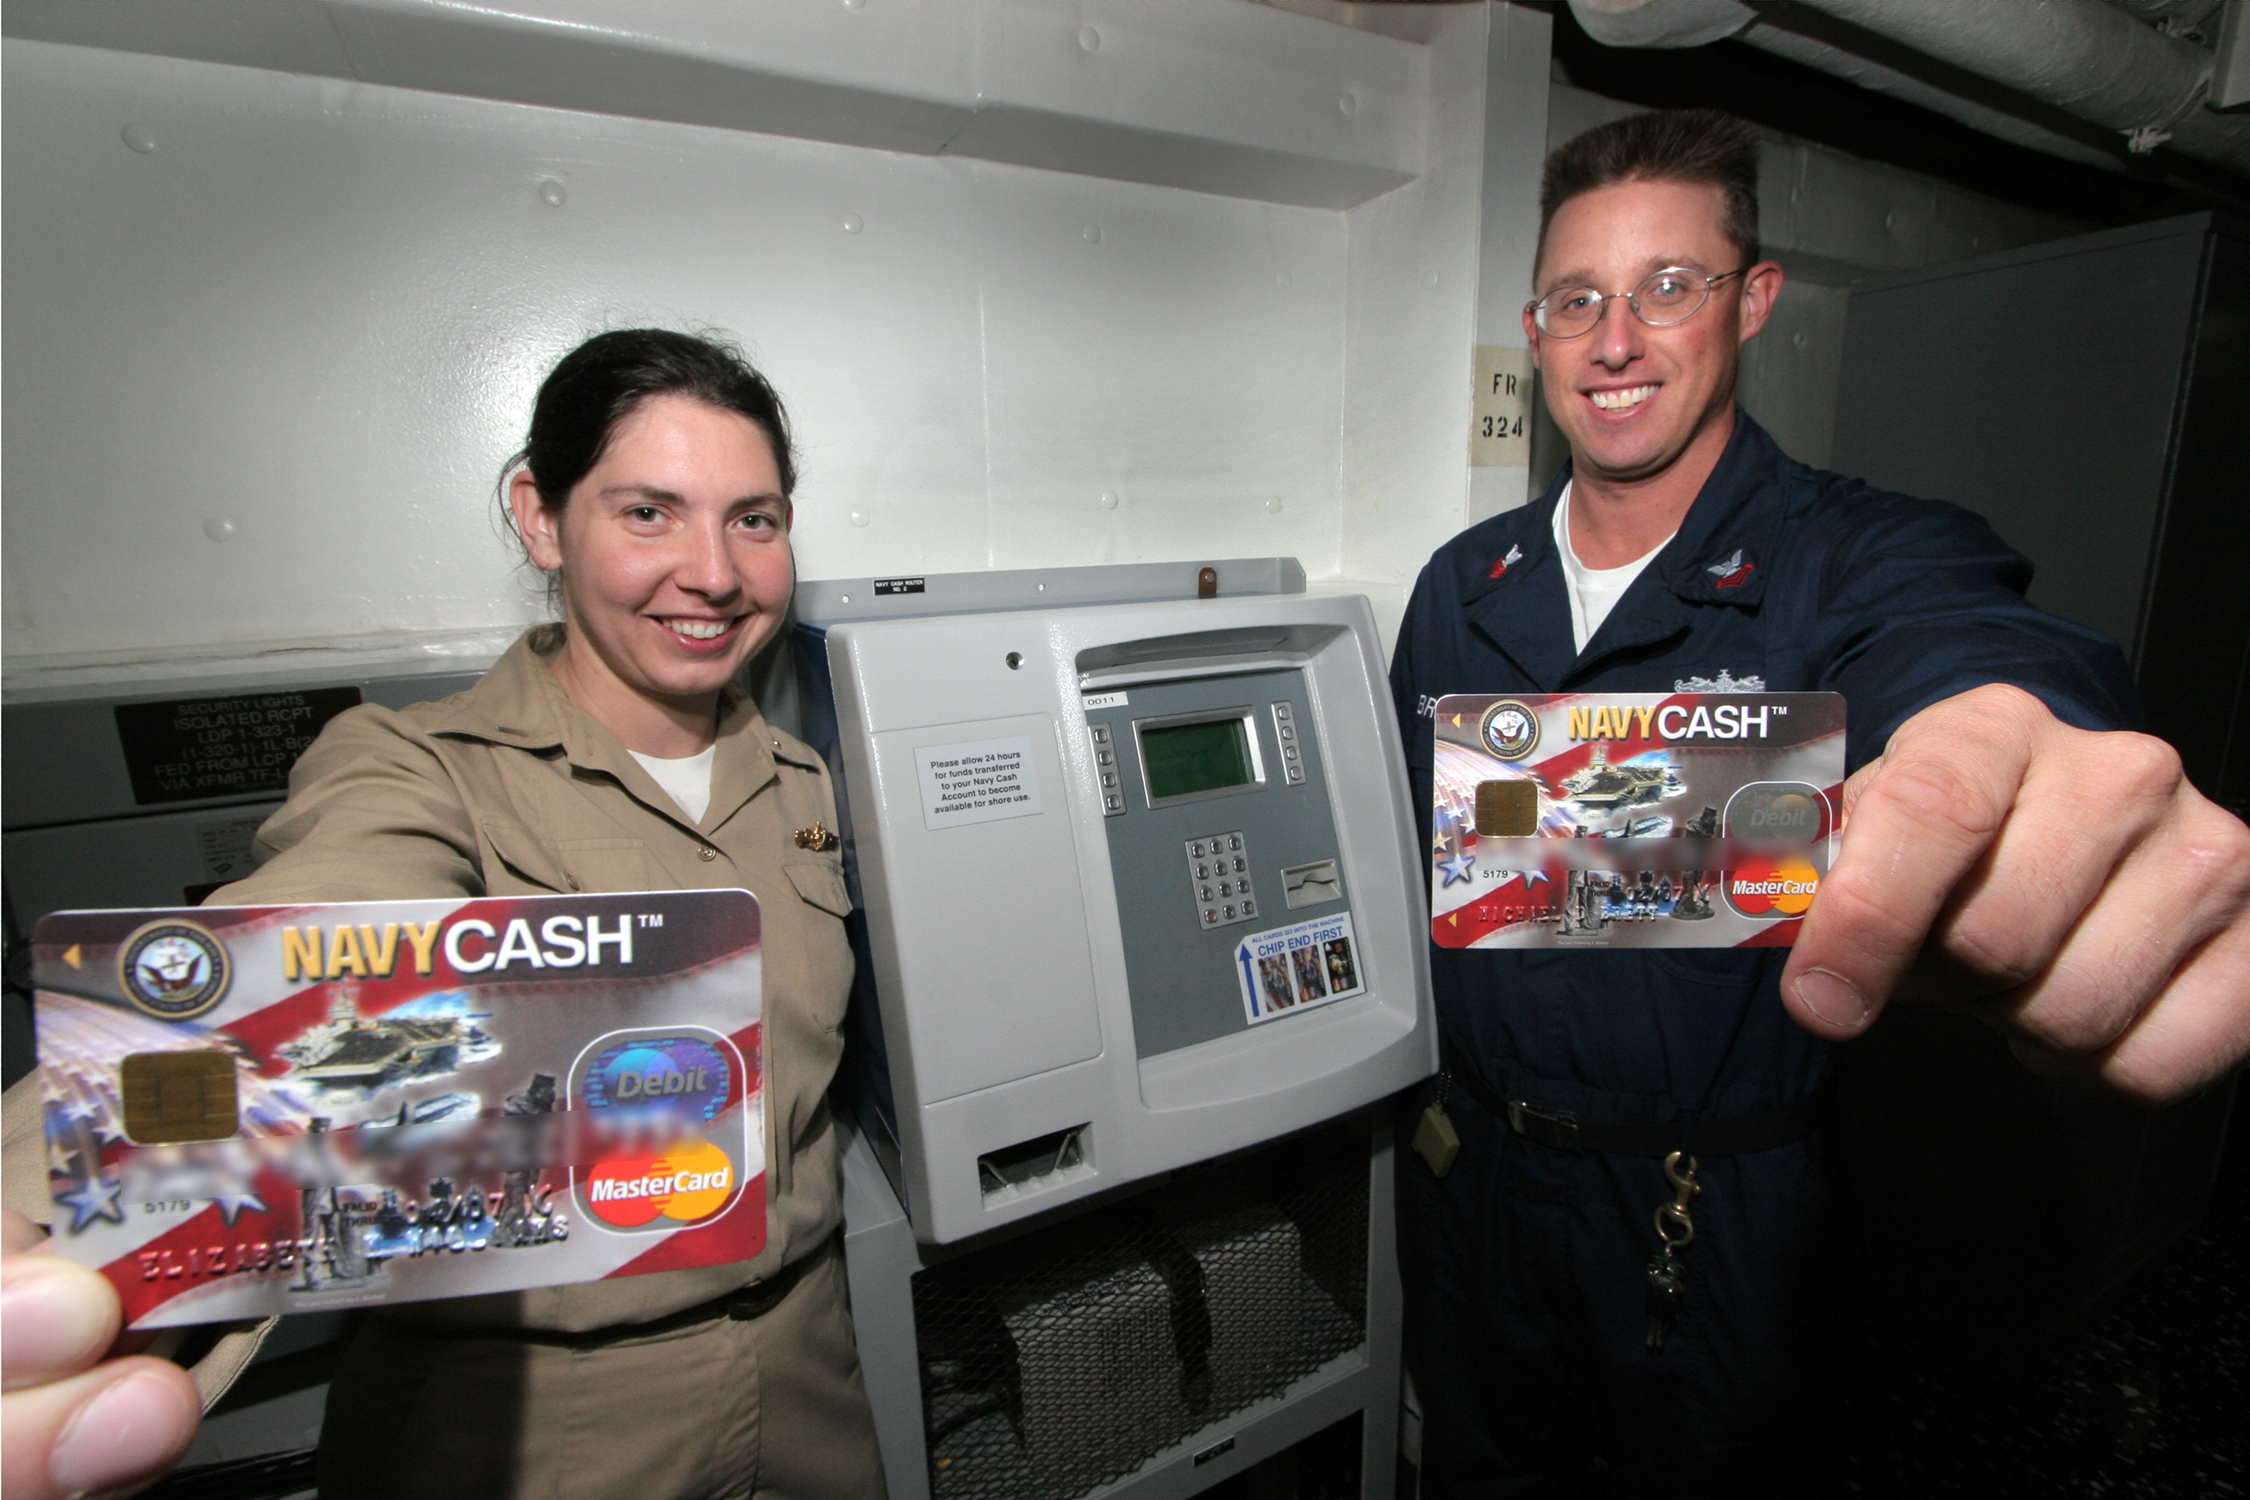 What is Navy Cash? The Navy Cash card is a branded debit card that looks like a typical debit or check card. Navy Cash combines a chip-based electronic purse (stored-value function) with the traditional magnetic stripe (debit card and ATM function). The electronic purse replaces currency aboard ship.